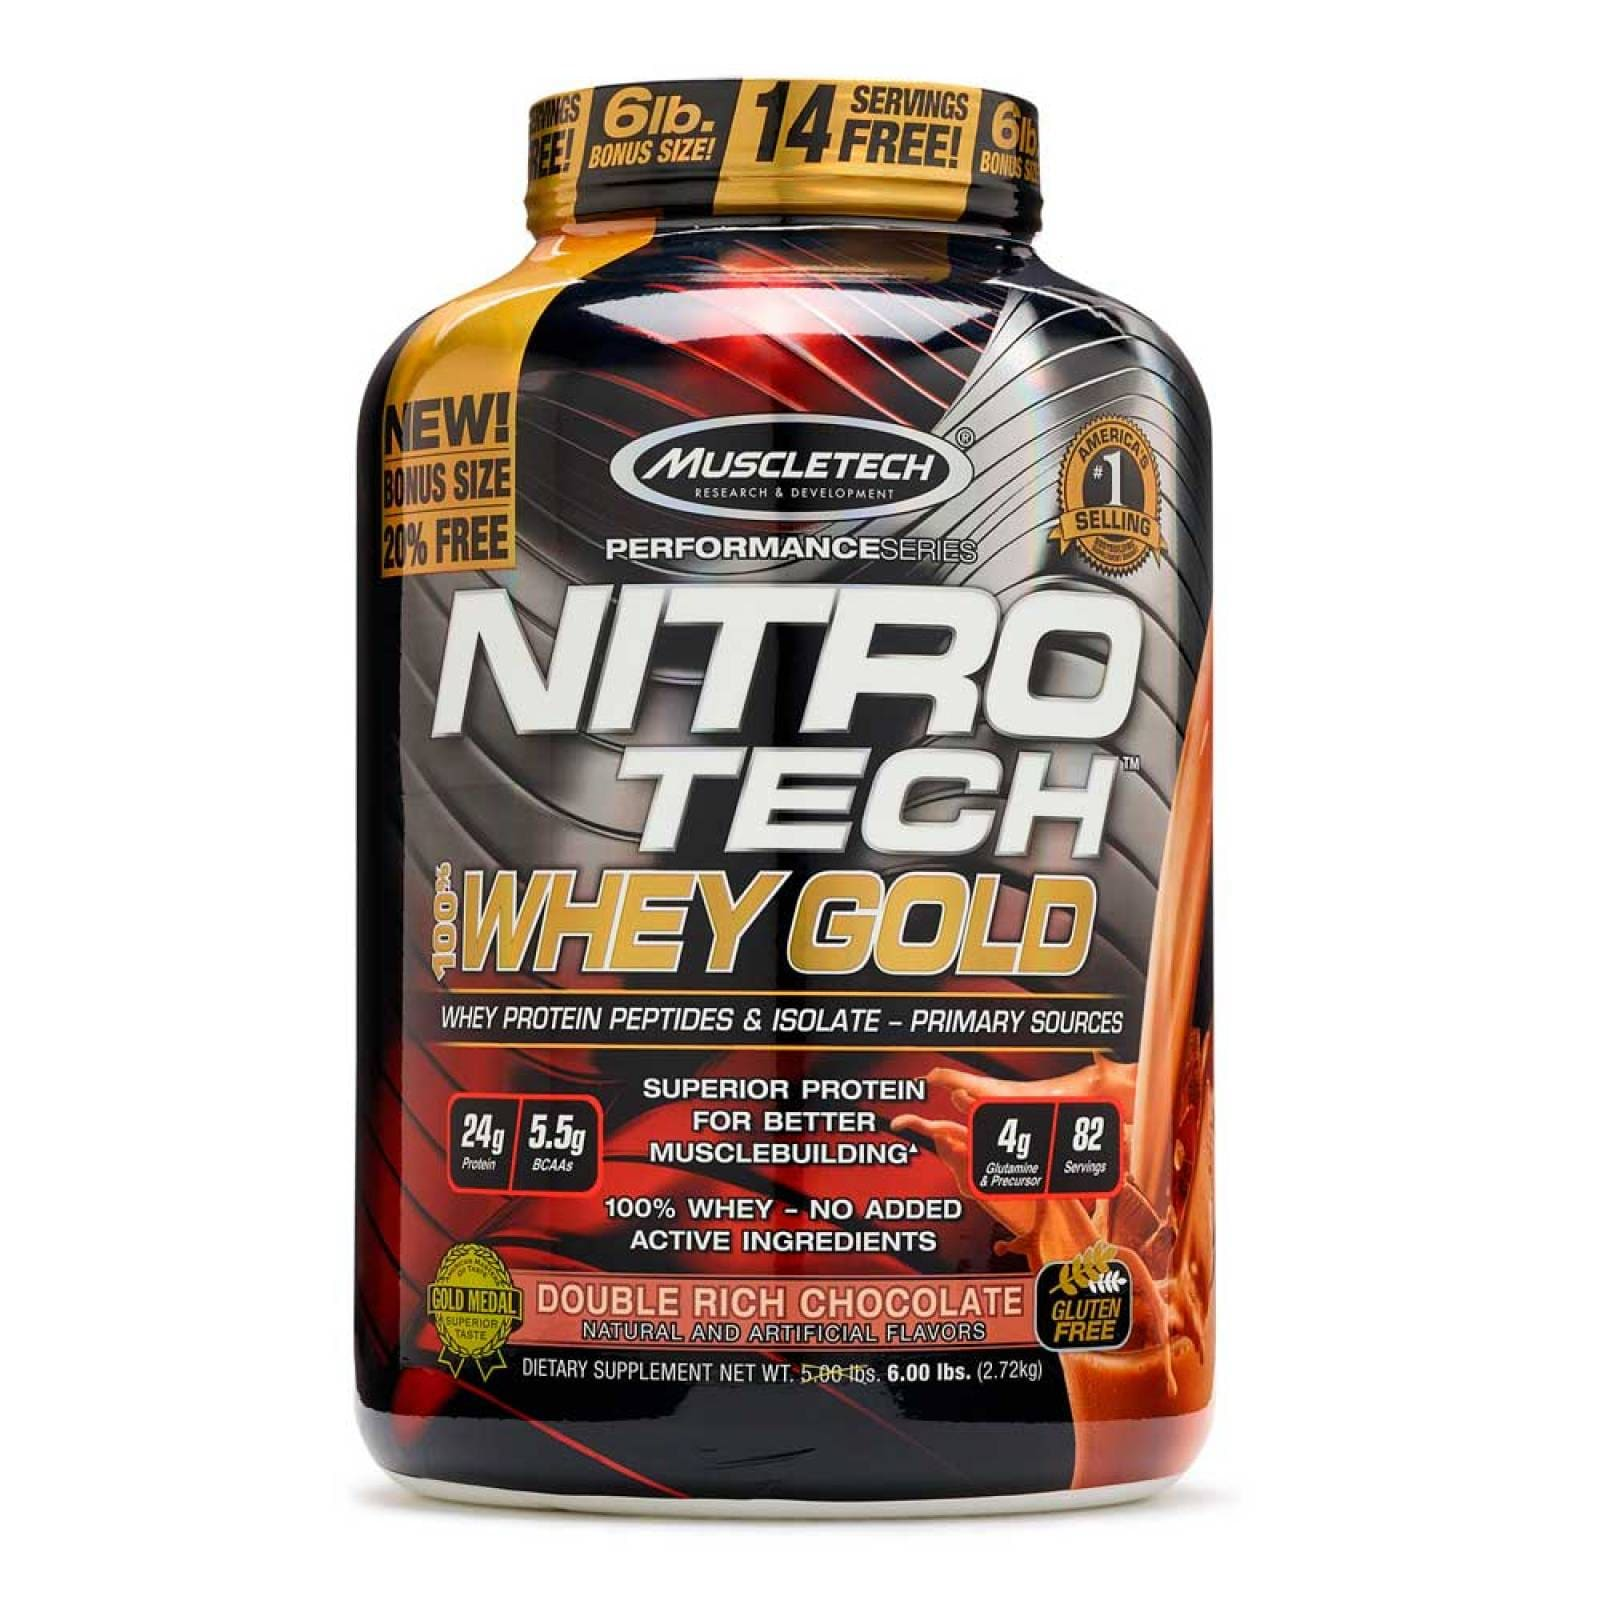 Proteina Muscletech Nitro-tech Whey Gold 5.5 Lbs Doble Rich Chocolate